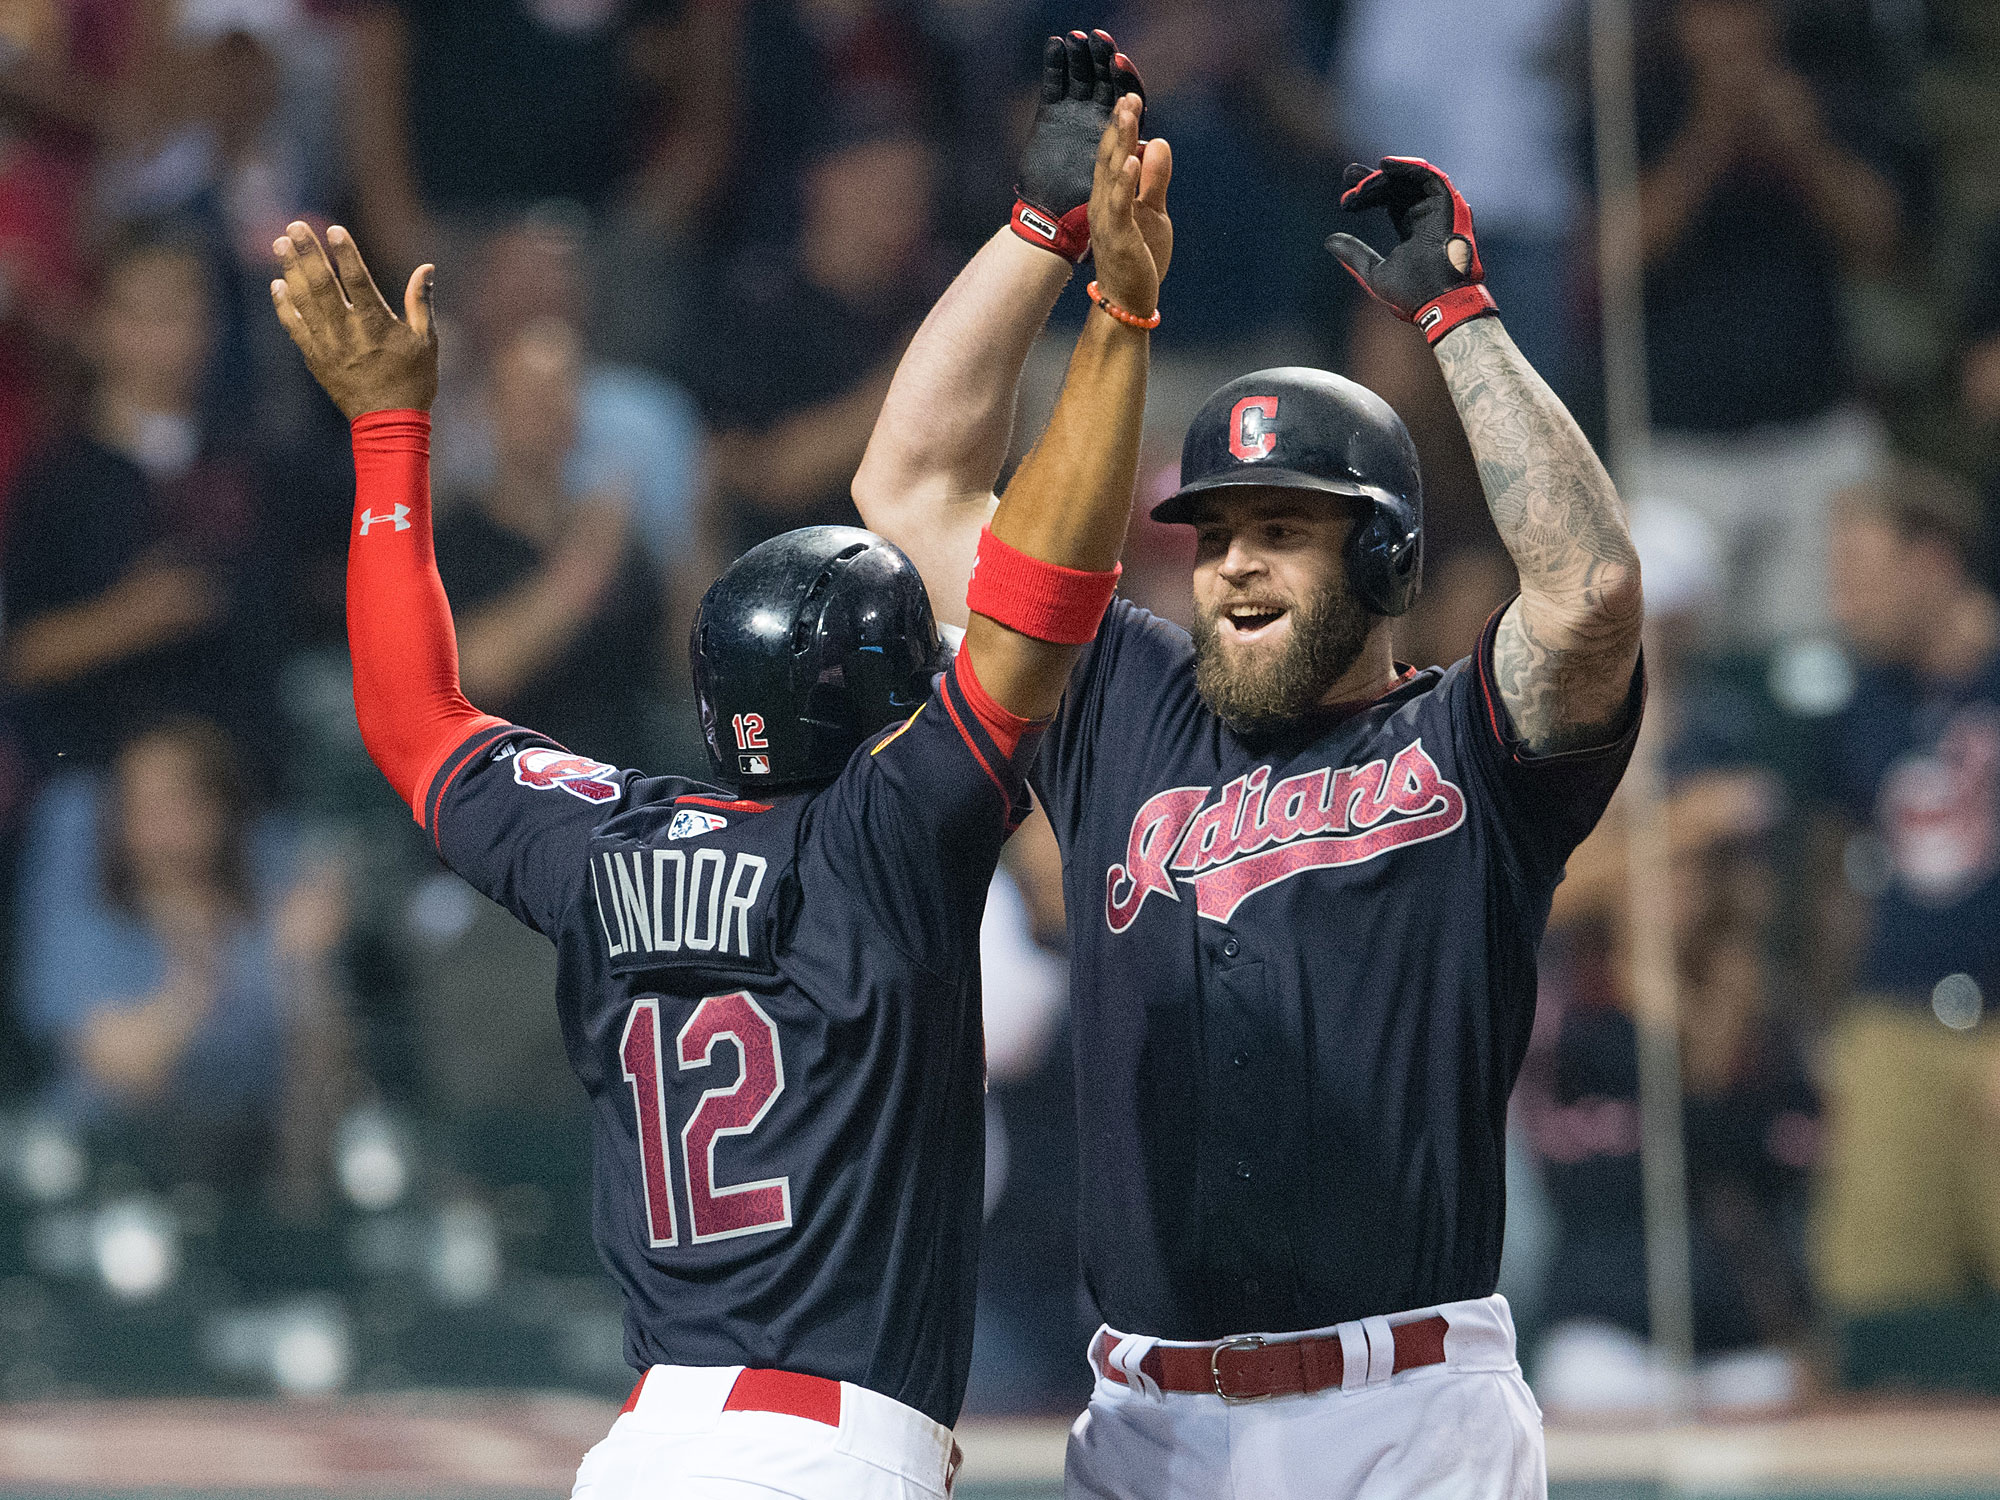 Mike Napoli and Francisco Lindor, Cleveland Indians